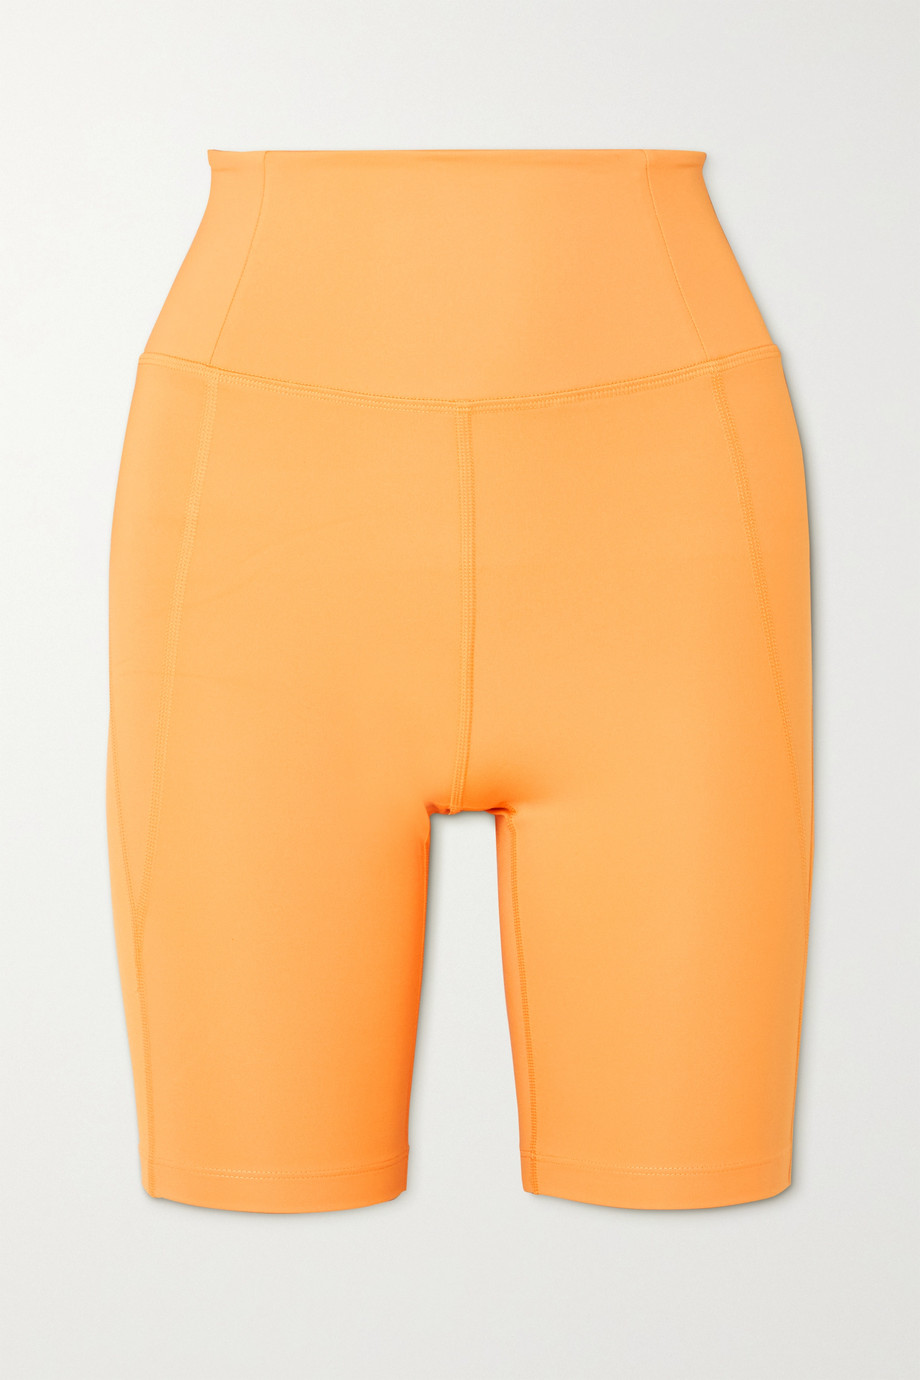 Girlfriend Collective + NET SUSTAIN Bike recycled stretch shorts